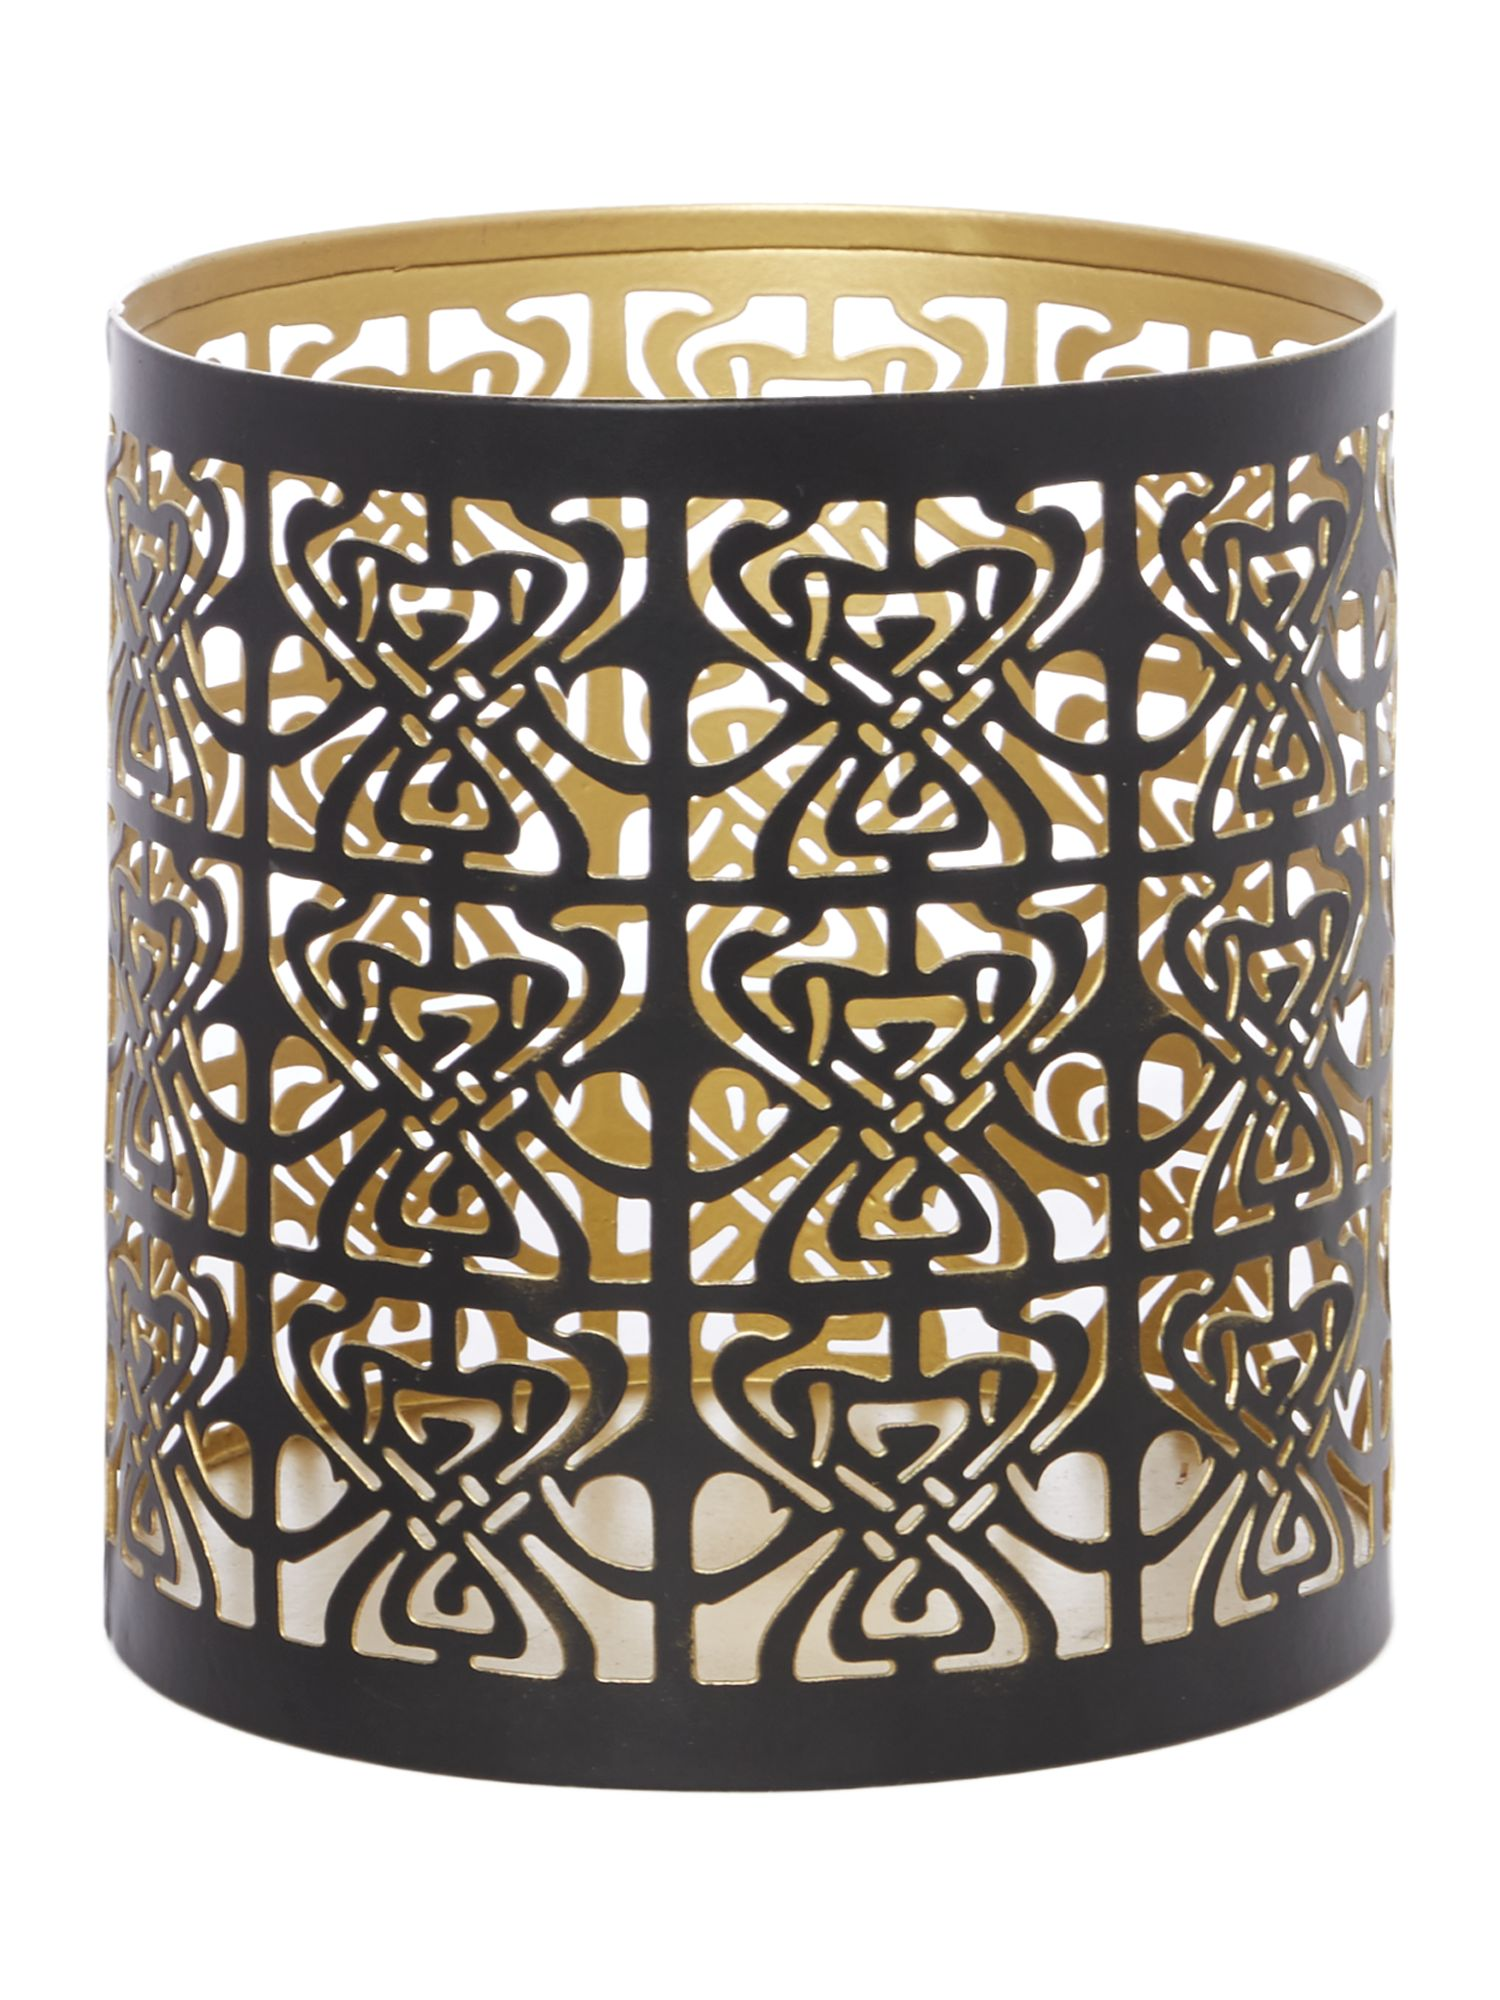 Biba Biba Large Biba logo votive Black and Gold